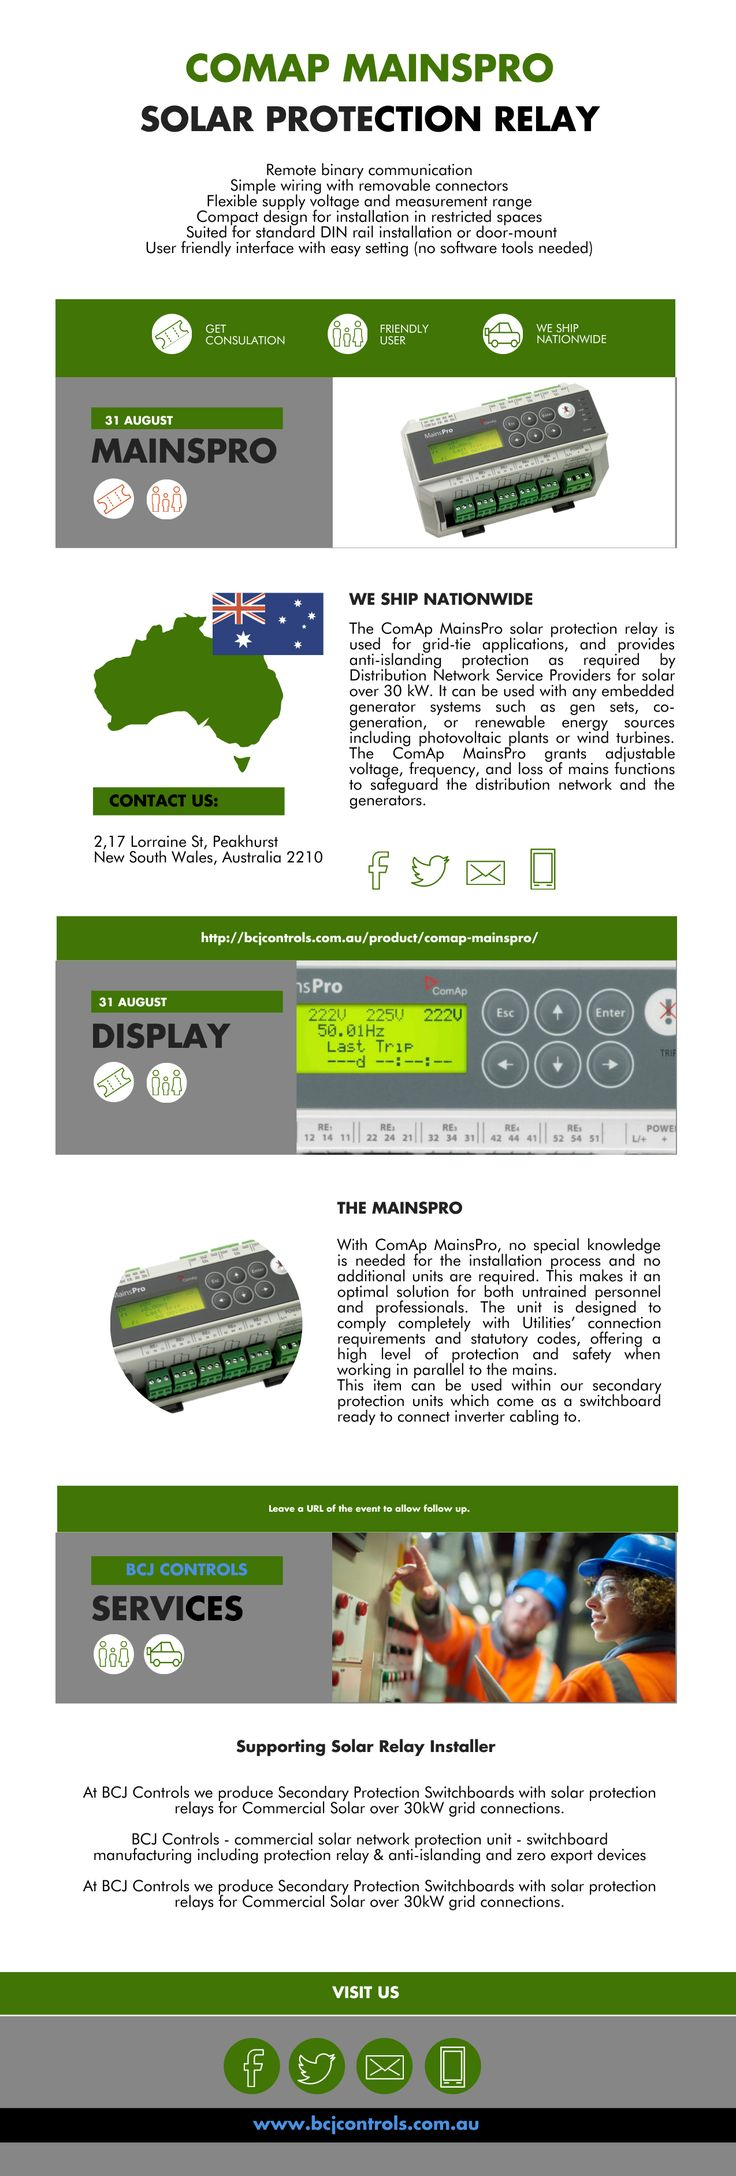 Home | ComAp MainsPro - Mains decouplings, Free assignment of five relay outputs allows for a large range of signaling and trip methods. A Four binary switches to remotely alter unit operation. Visit us for more info and features of the products @http://bcjcontrols.com.au/product/comap-mainspro/  #solarprotectionrelay #mainsPro #ComApMainsPro #ComAp